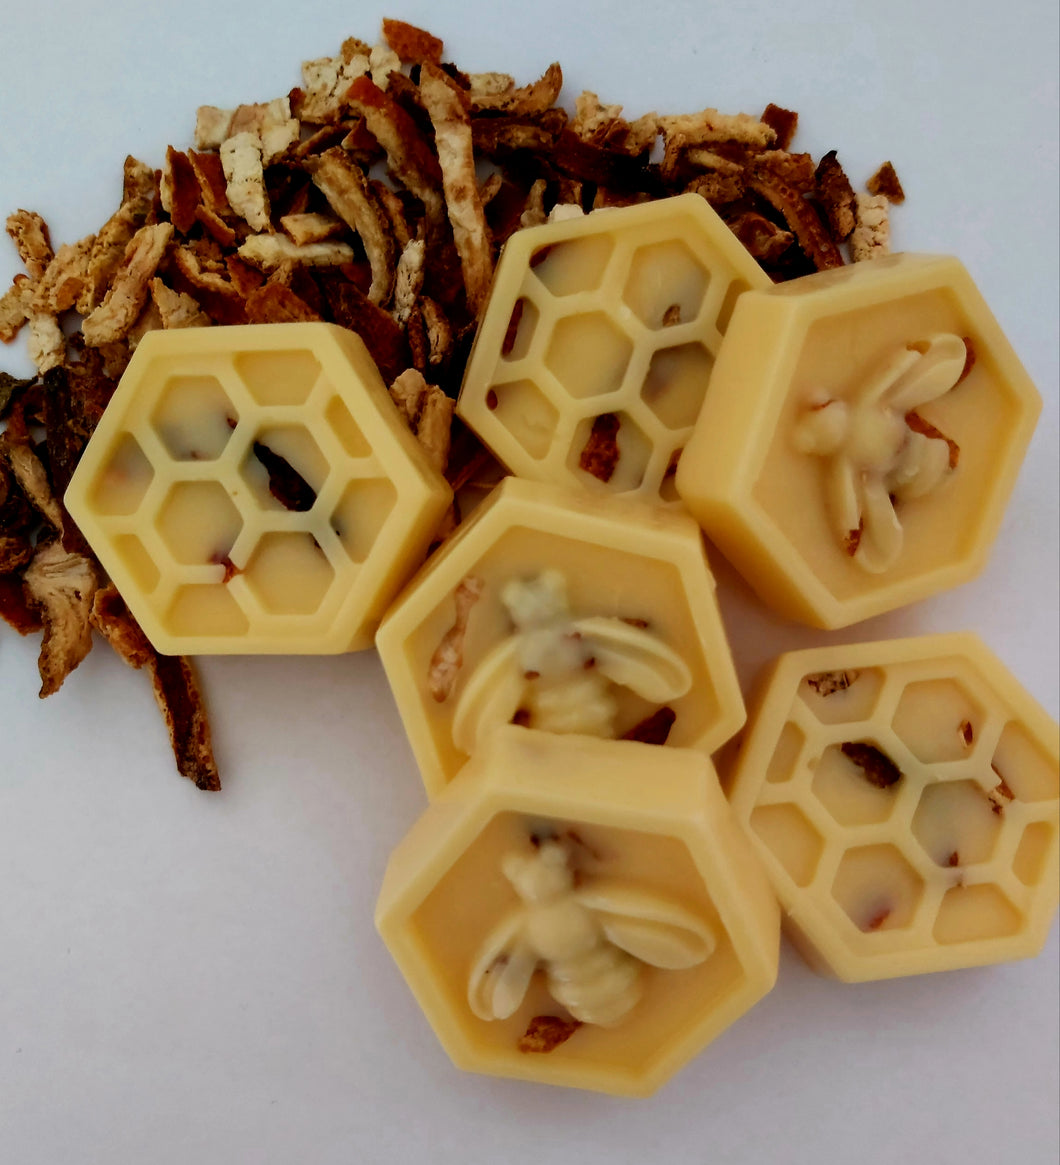 Beeswax Aromatherapy Melts (6 pack)